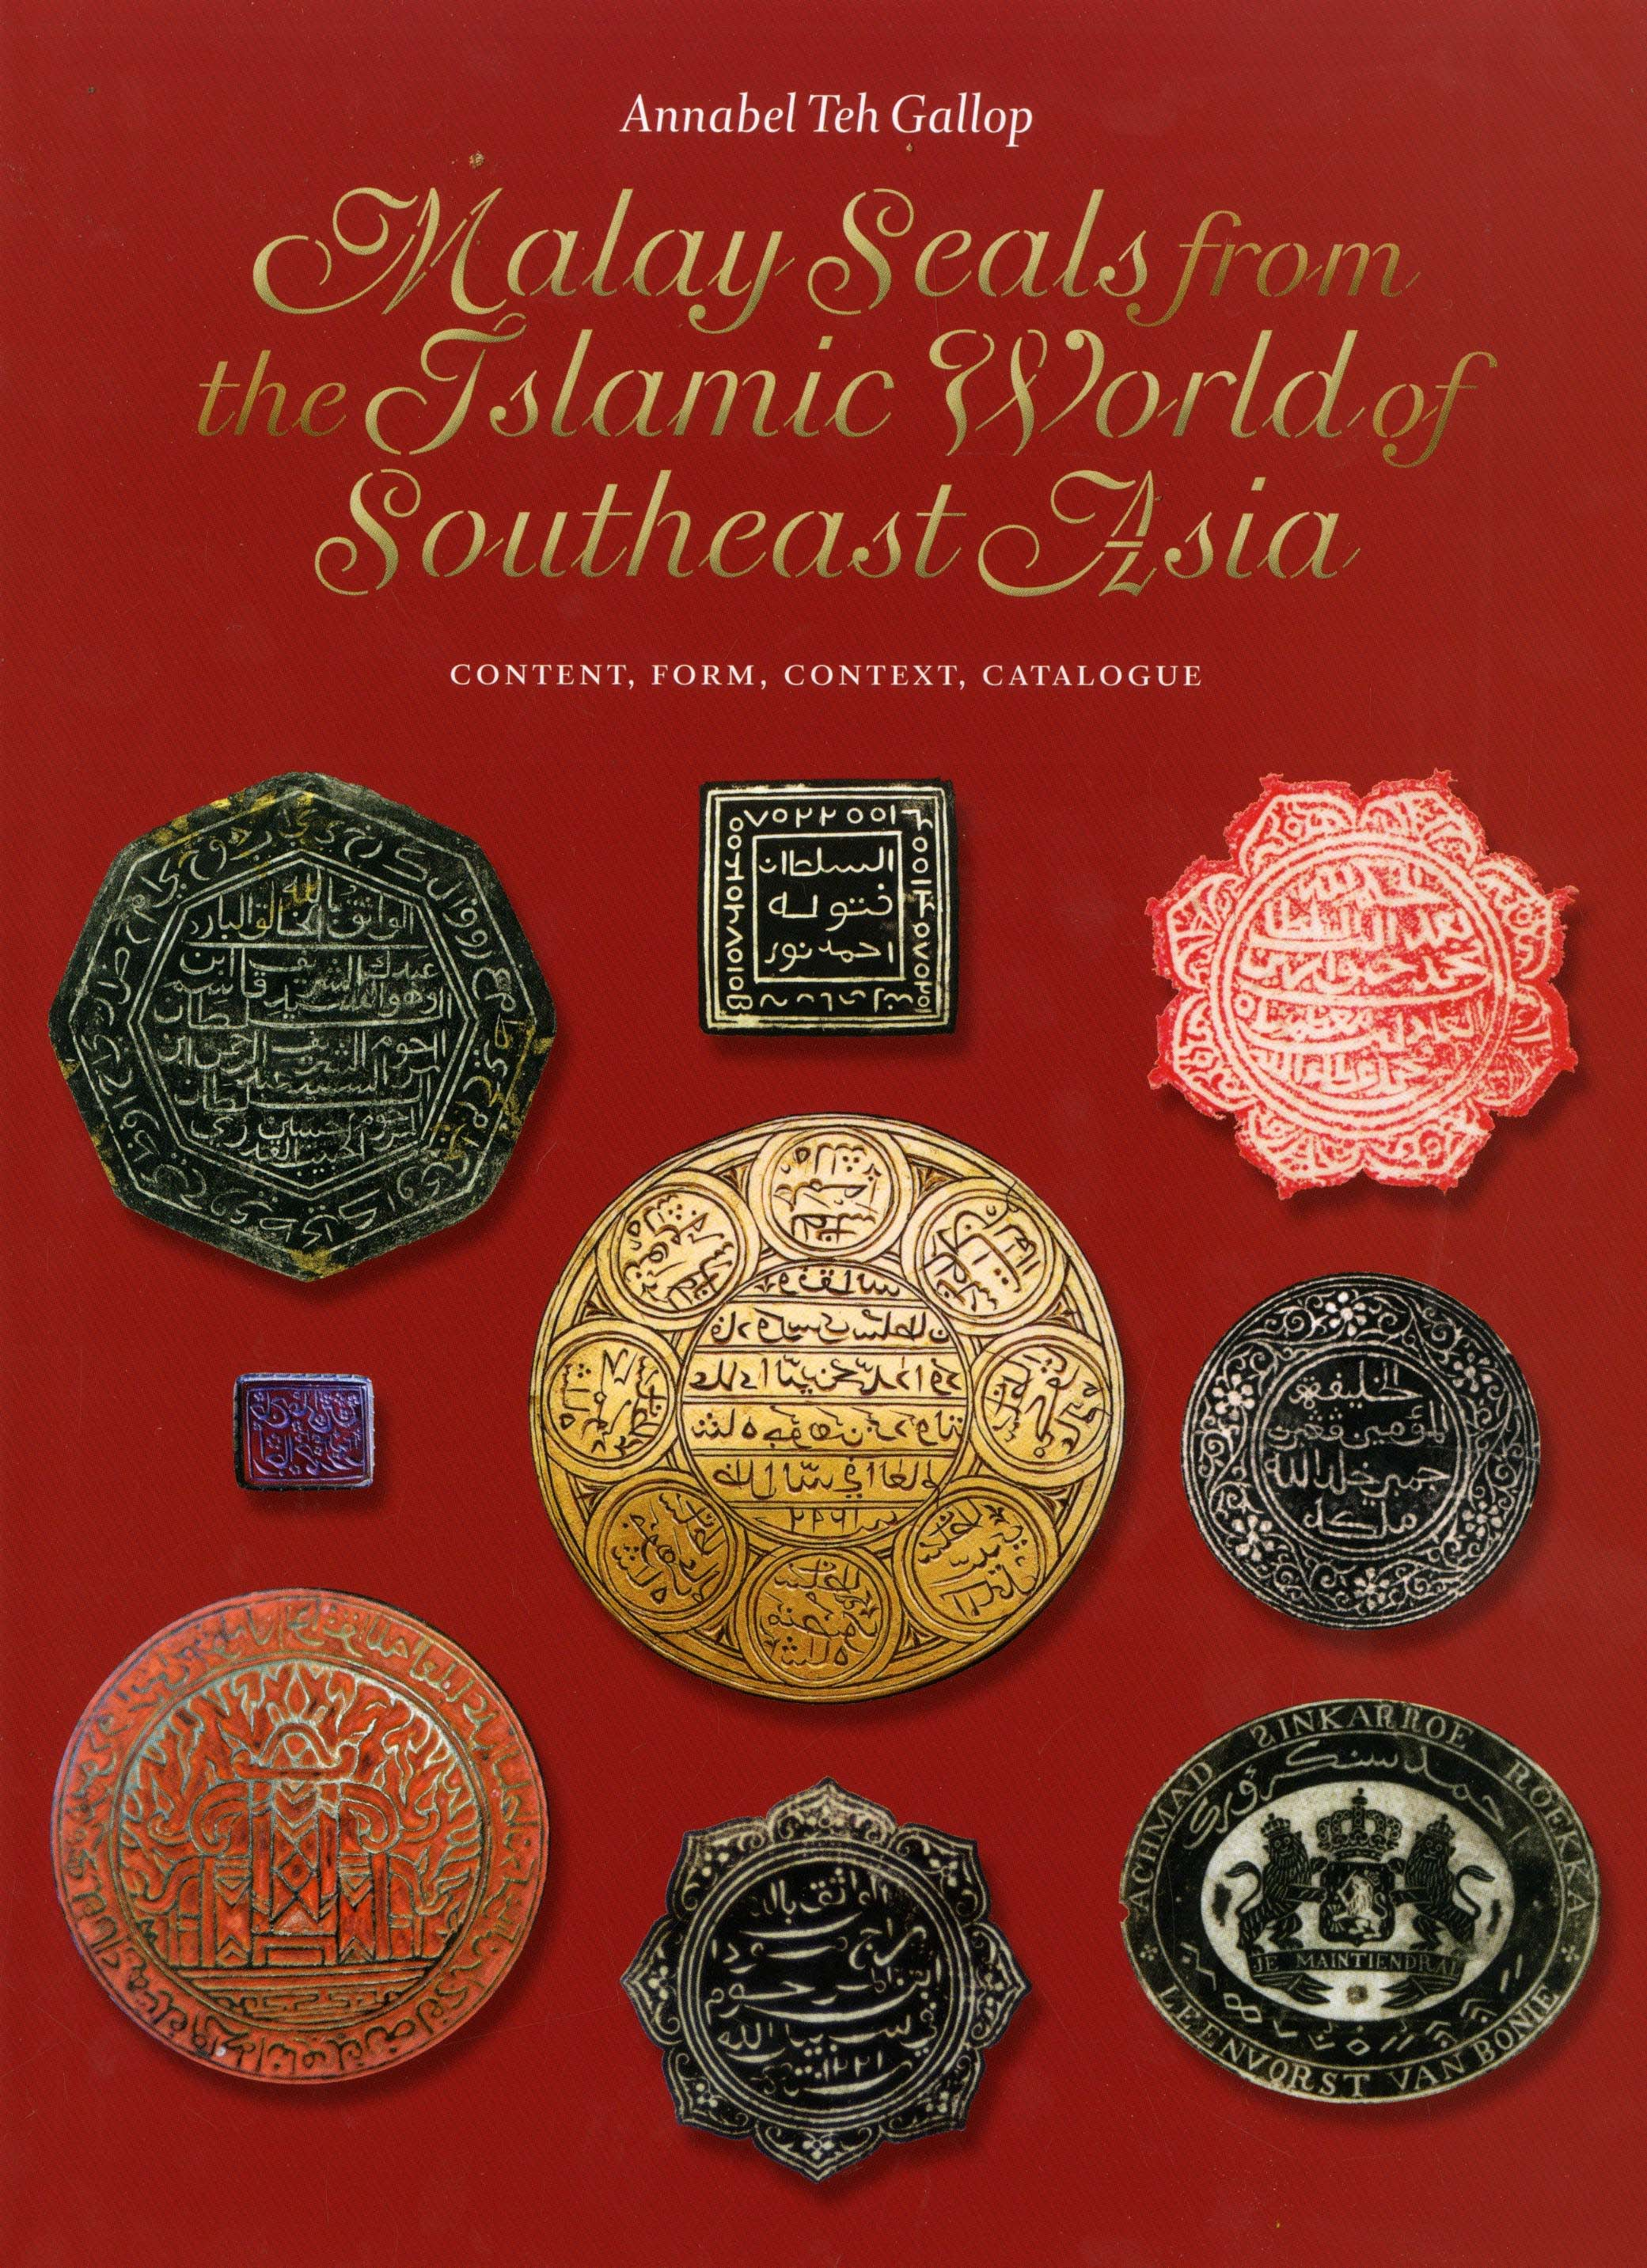 Malay seals from the Islamic world of Southeast Asia.